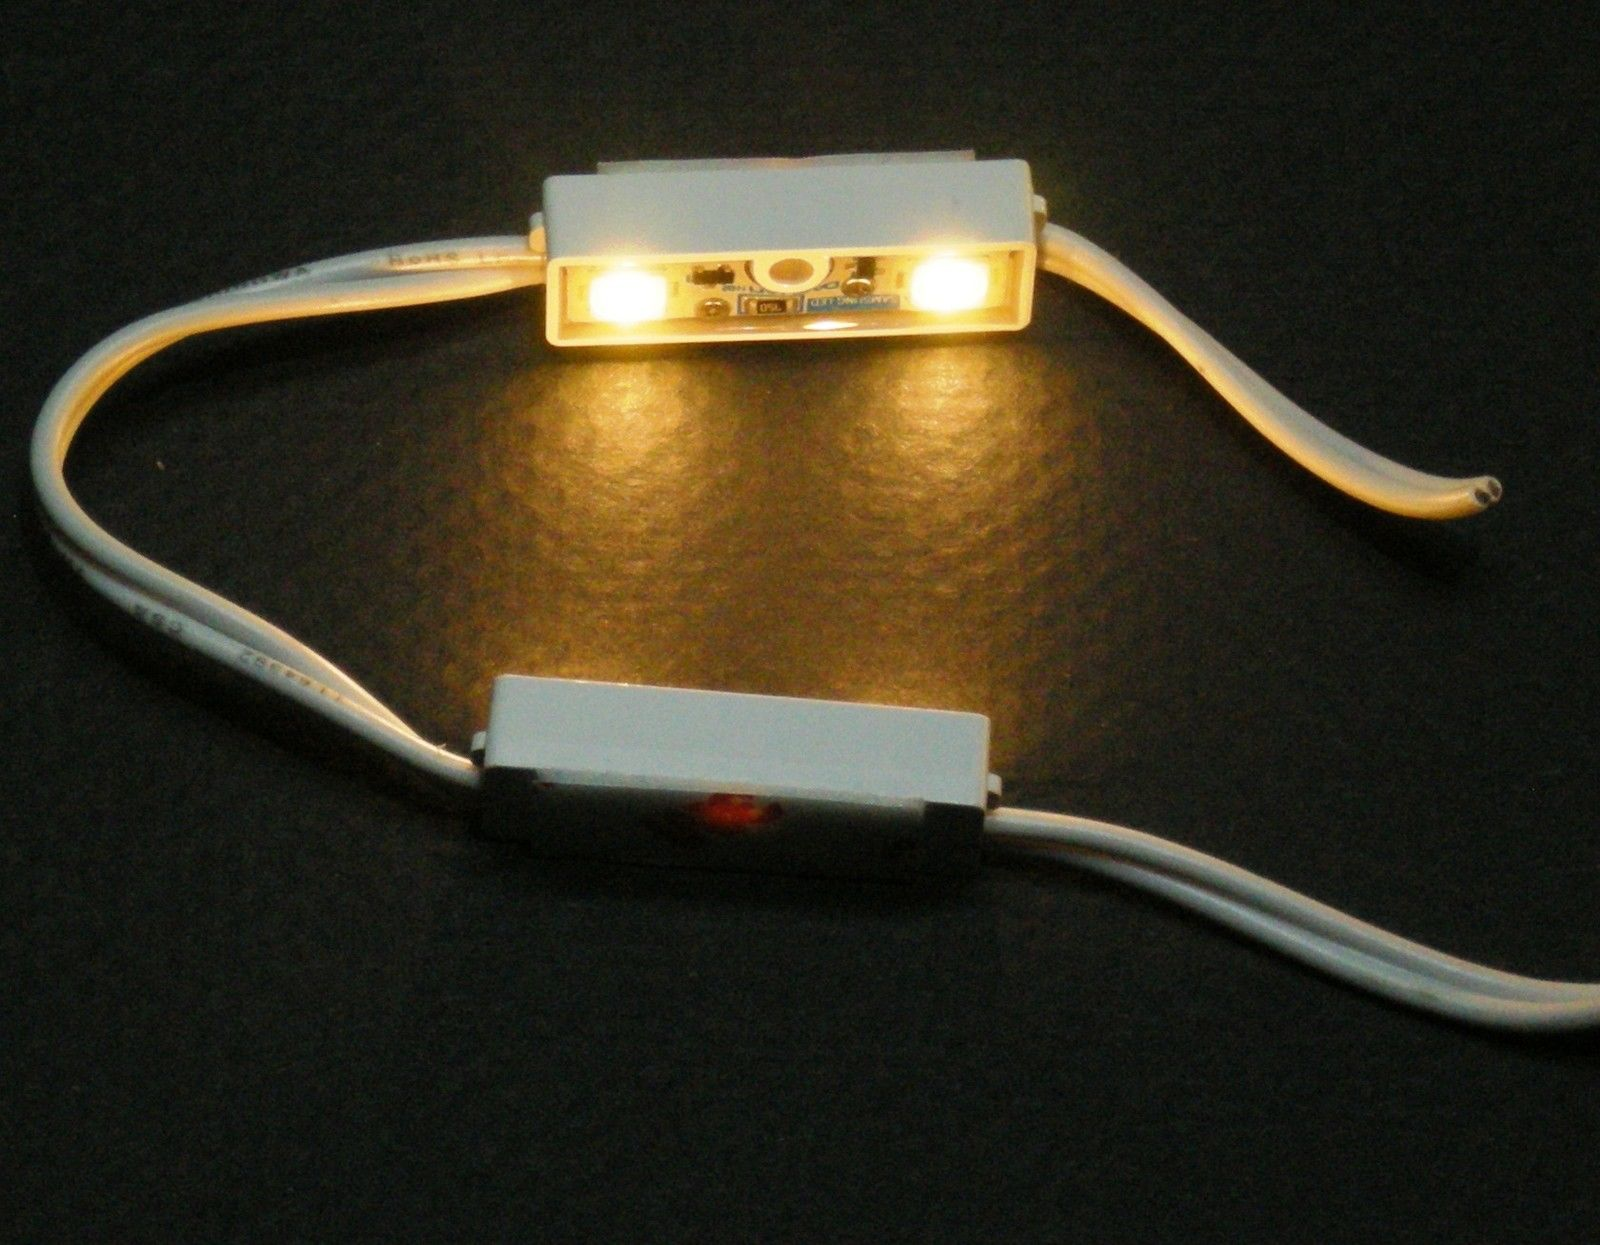 String Lights For Under Cabinets : LED MODULE LOW PROFILE 12VDC WARM WHITE SAMSUNG LEDS LIGHT STRING UNDER CABINET, J2 LED LIGHTING LLC